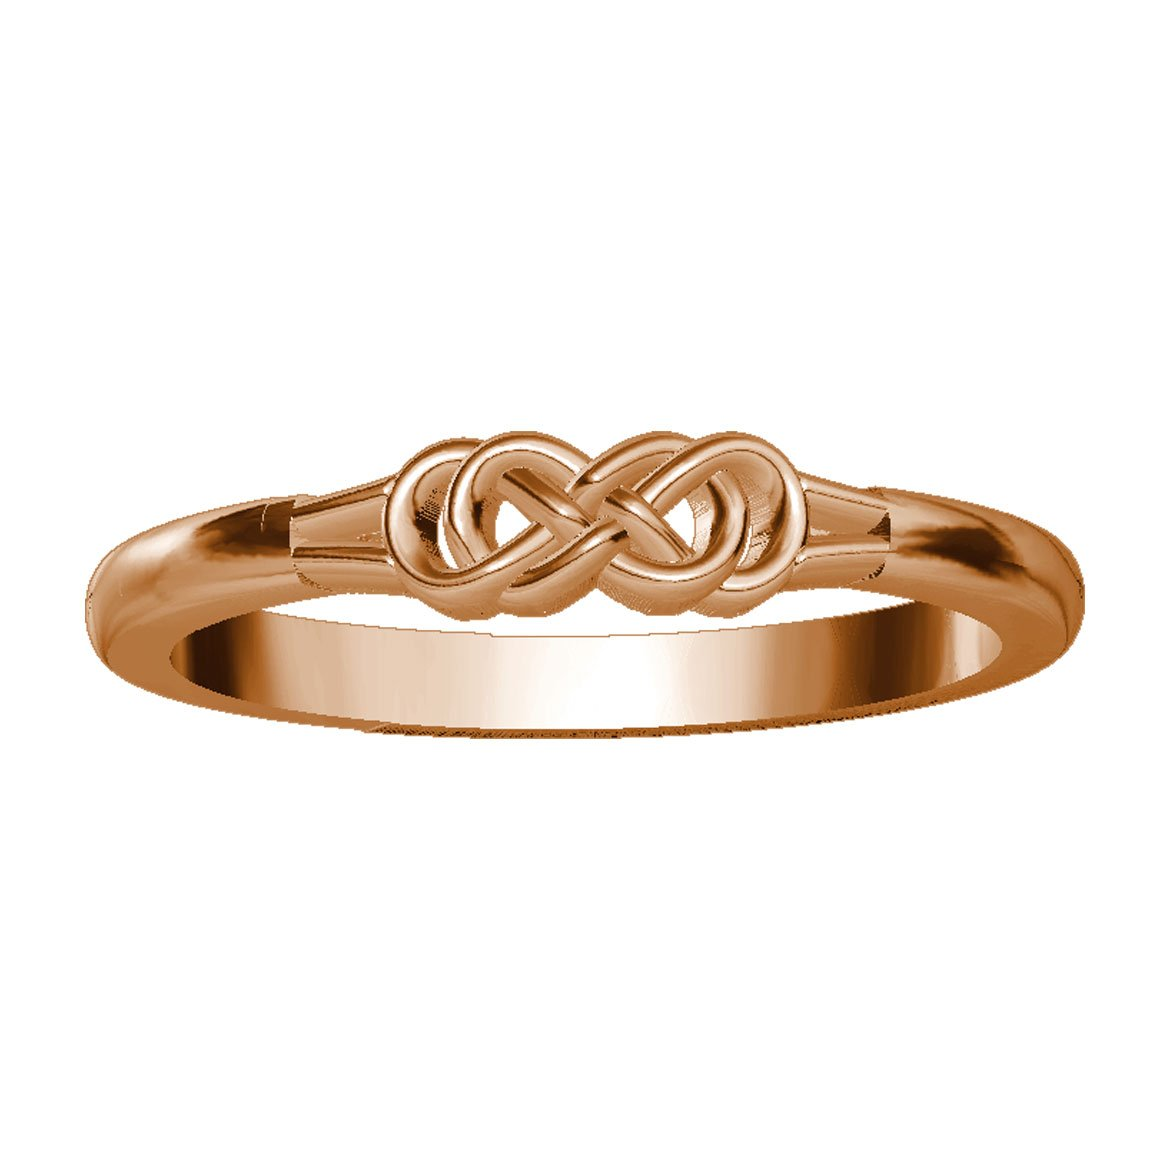 Infinity Rings in 14K Rose Gold size 11.5